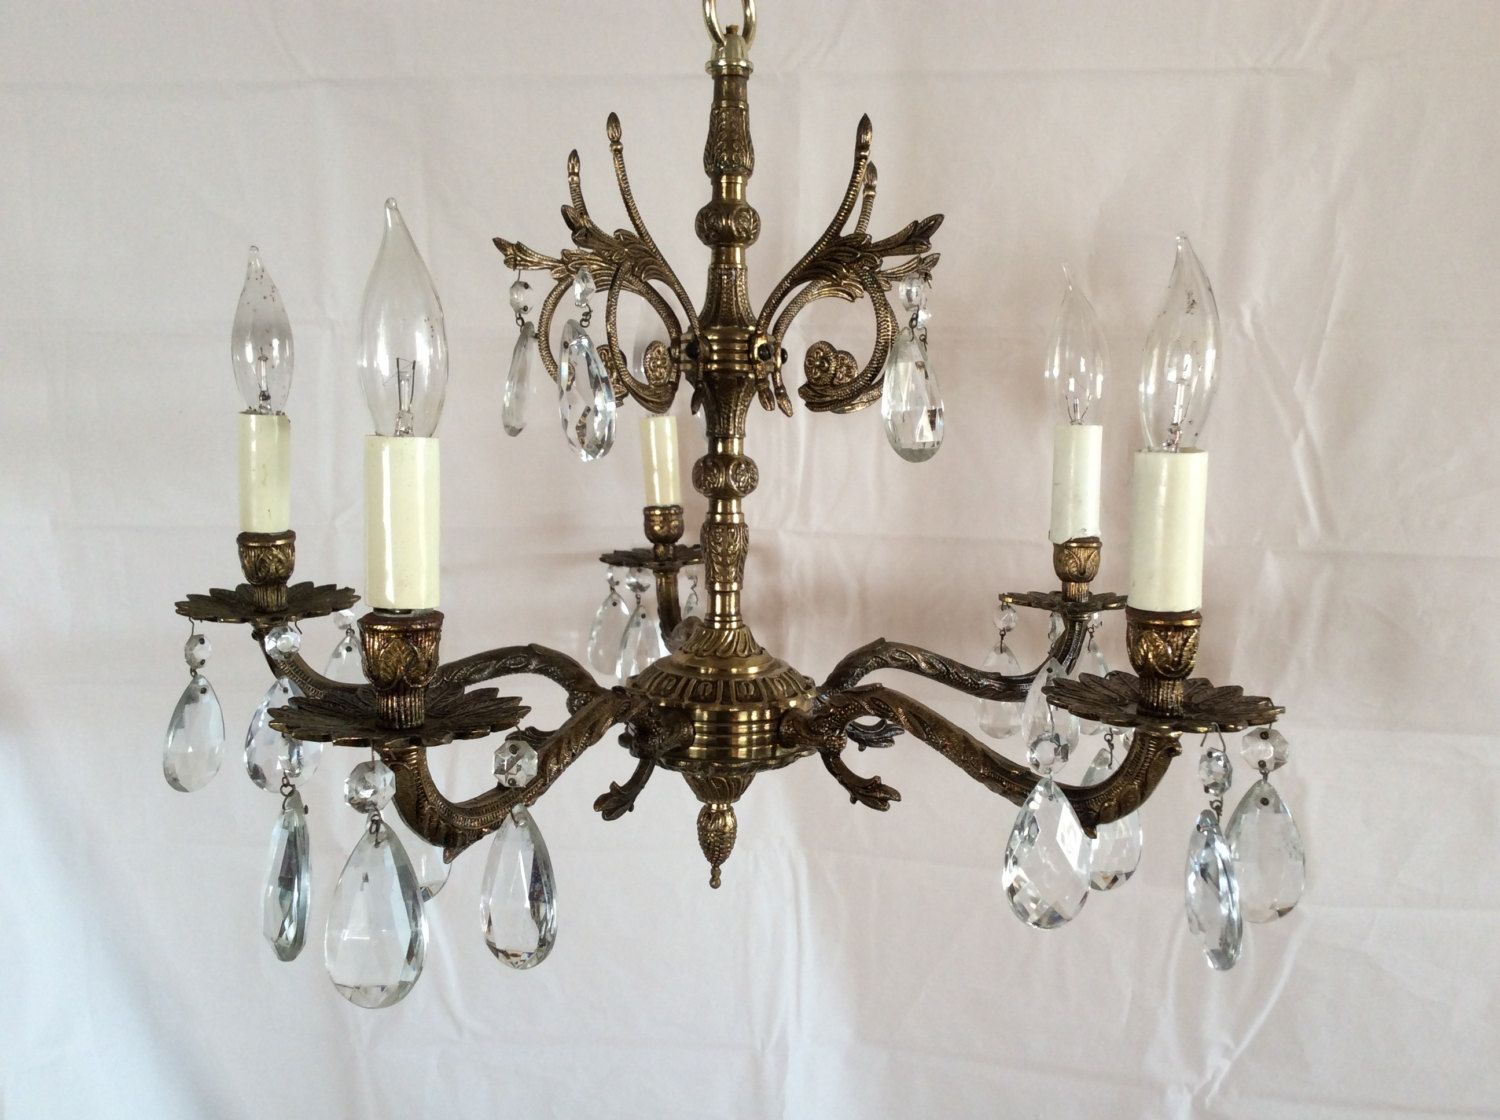 Antique Vintage Brass Crystal Chandelier Made In Spain 1930s Crystal Chandelier Chandelier Vintage Brass